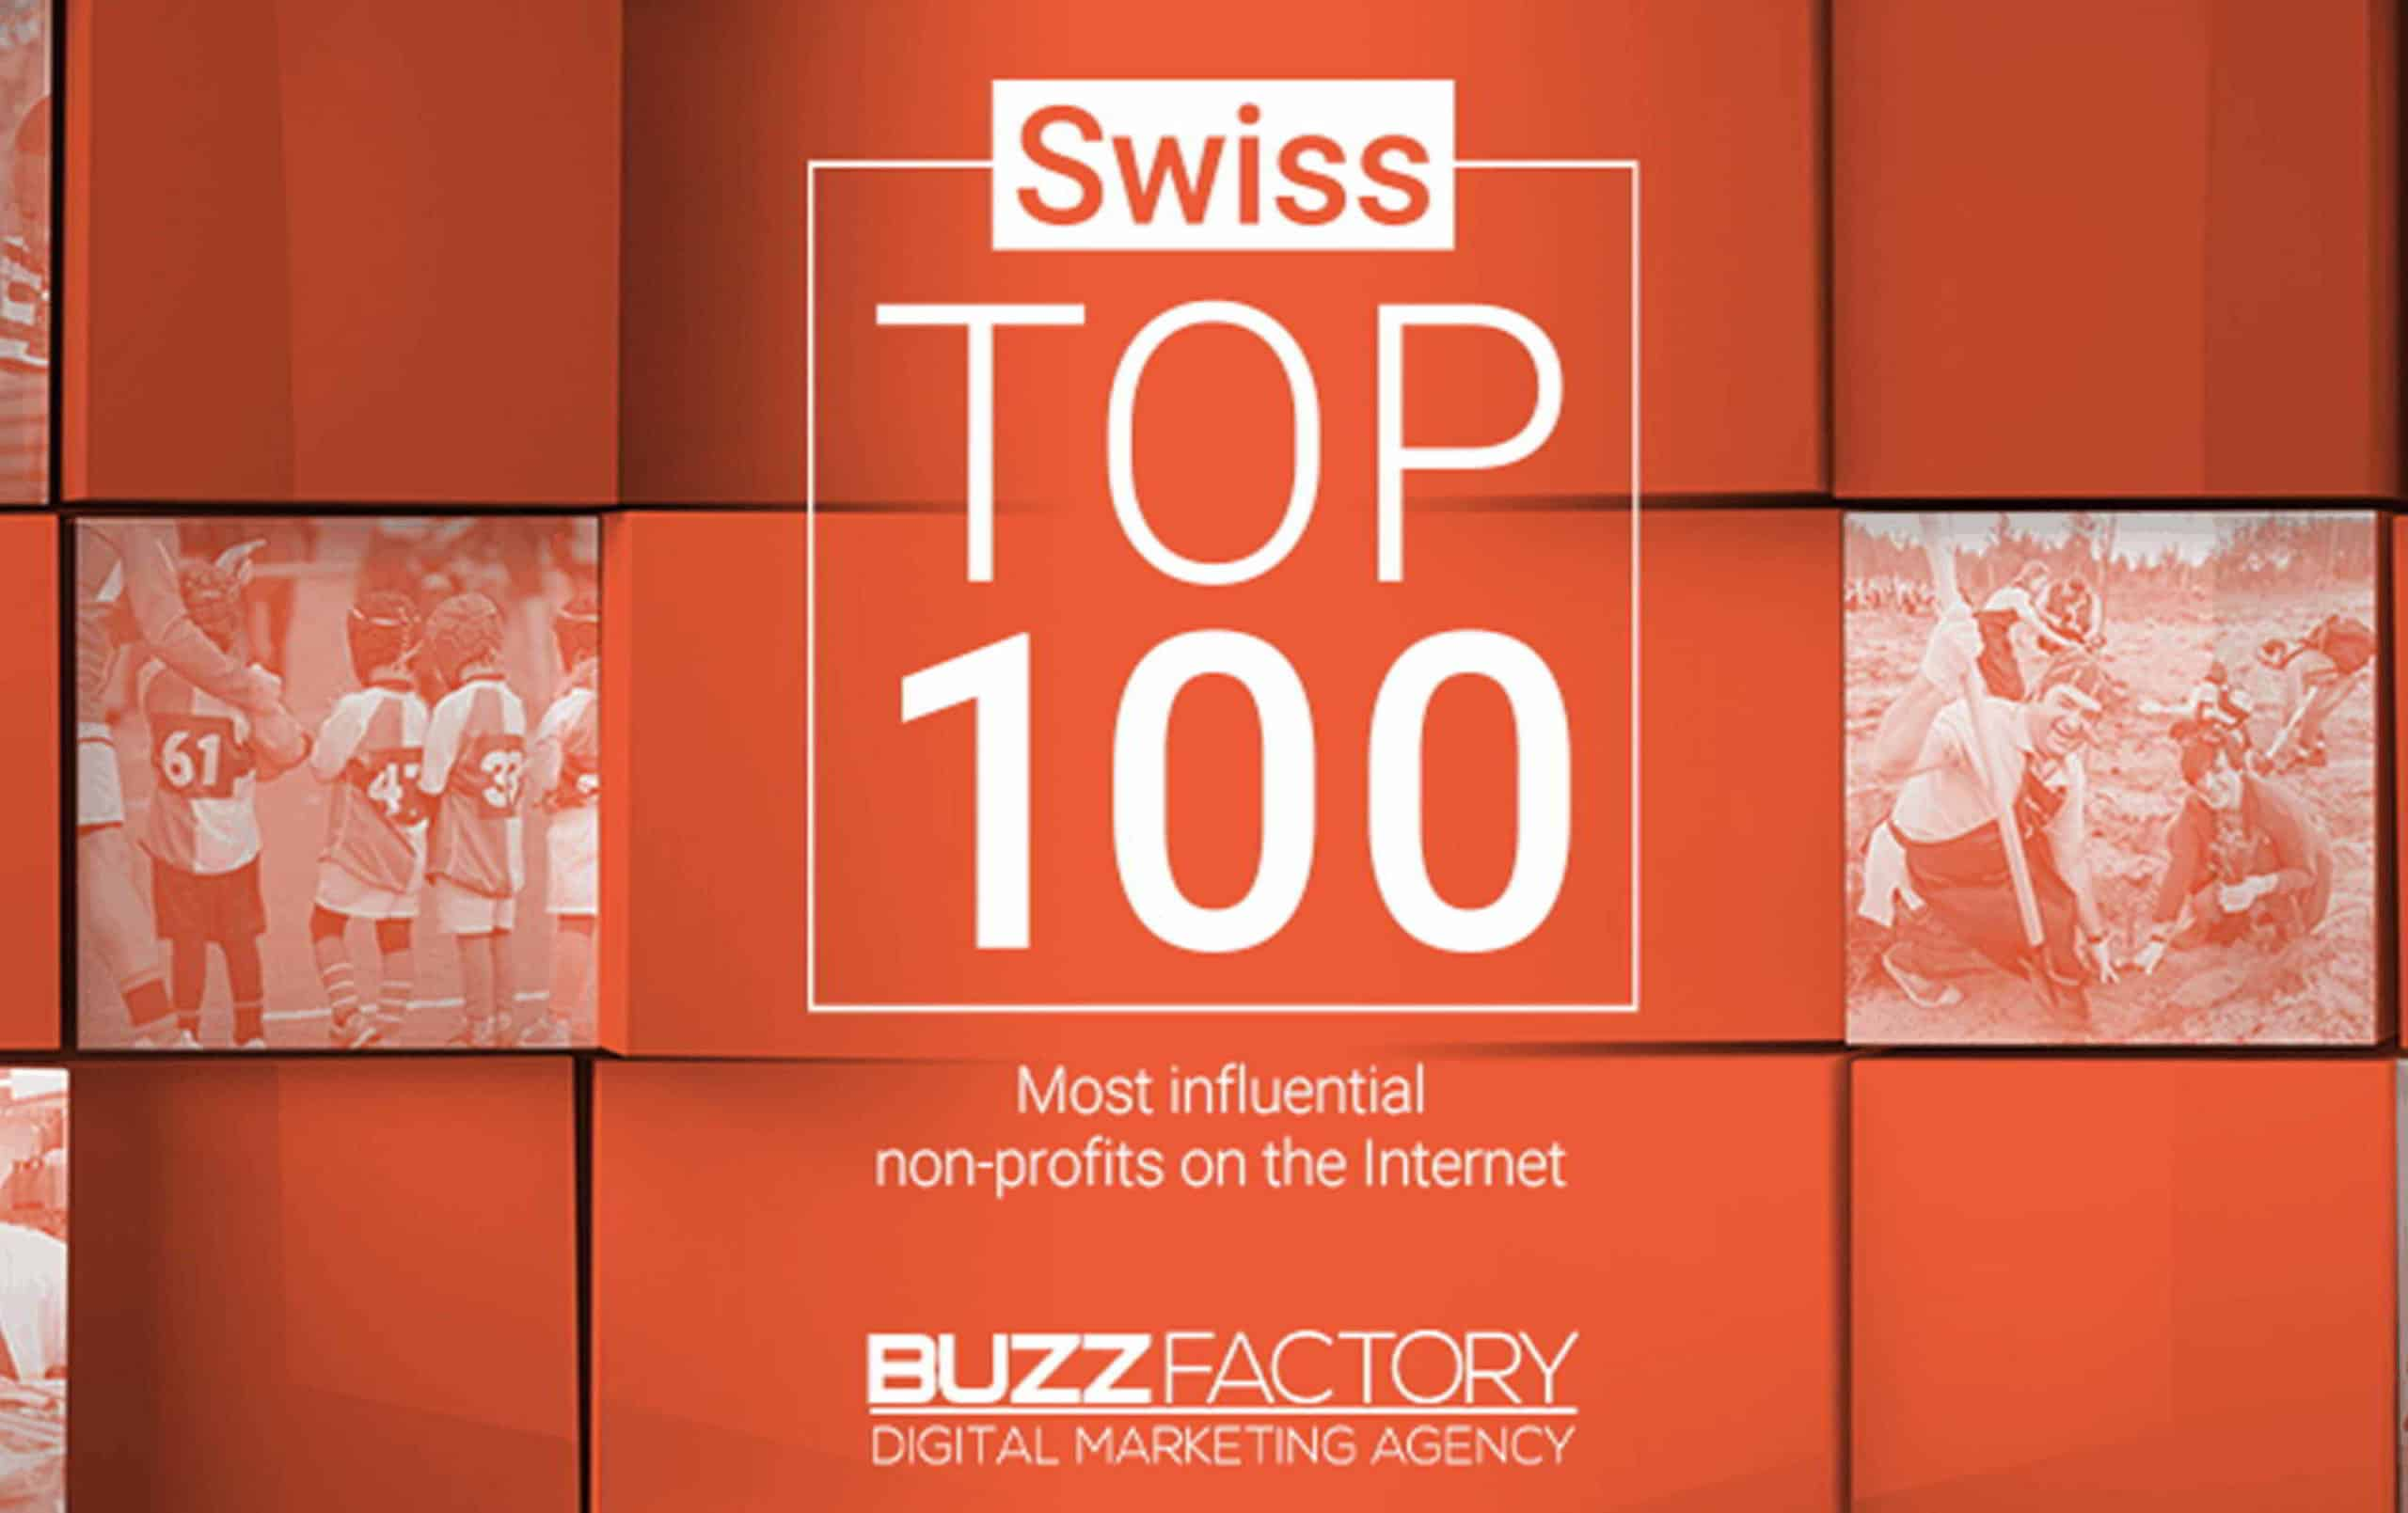 Swiss top 100 most influencial non-profits on the Internet